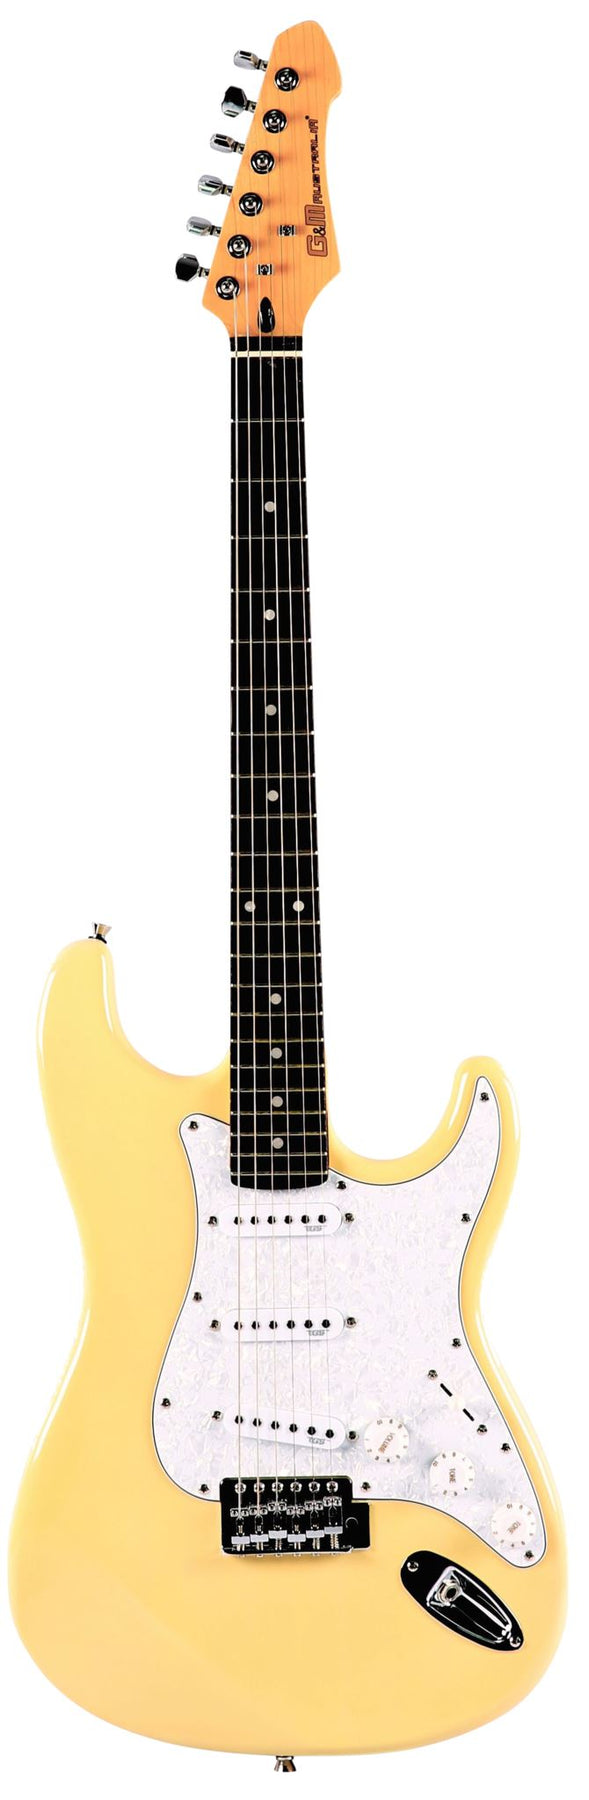 GM ST2 Strat Style Guitar Electric Guitars GM Vintage White